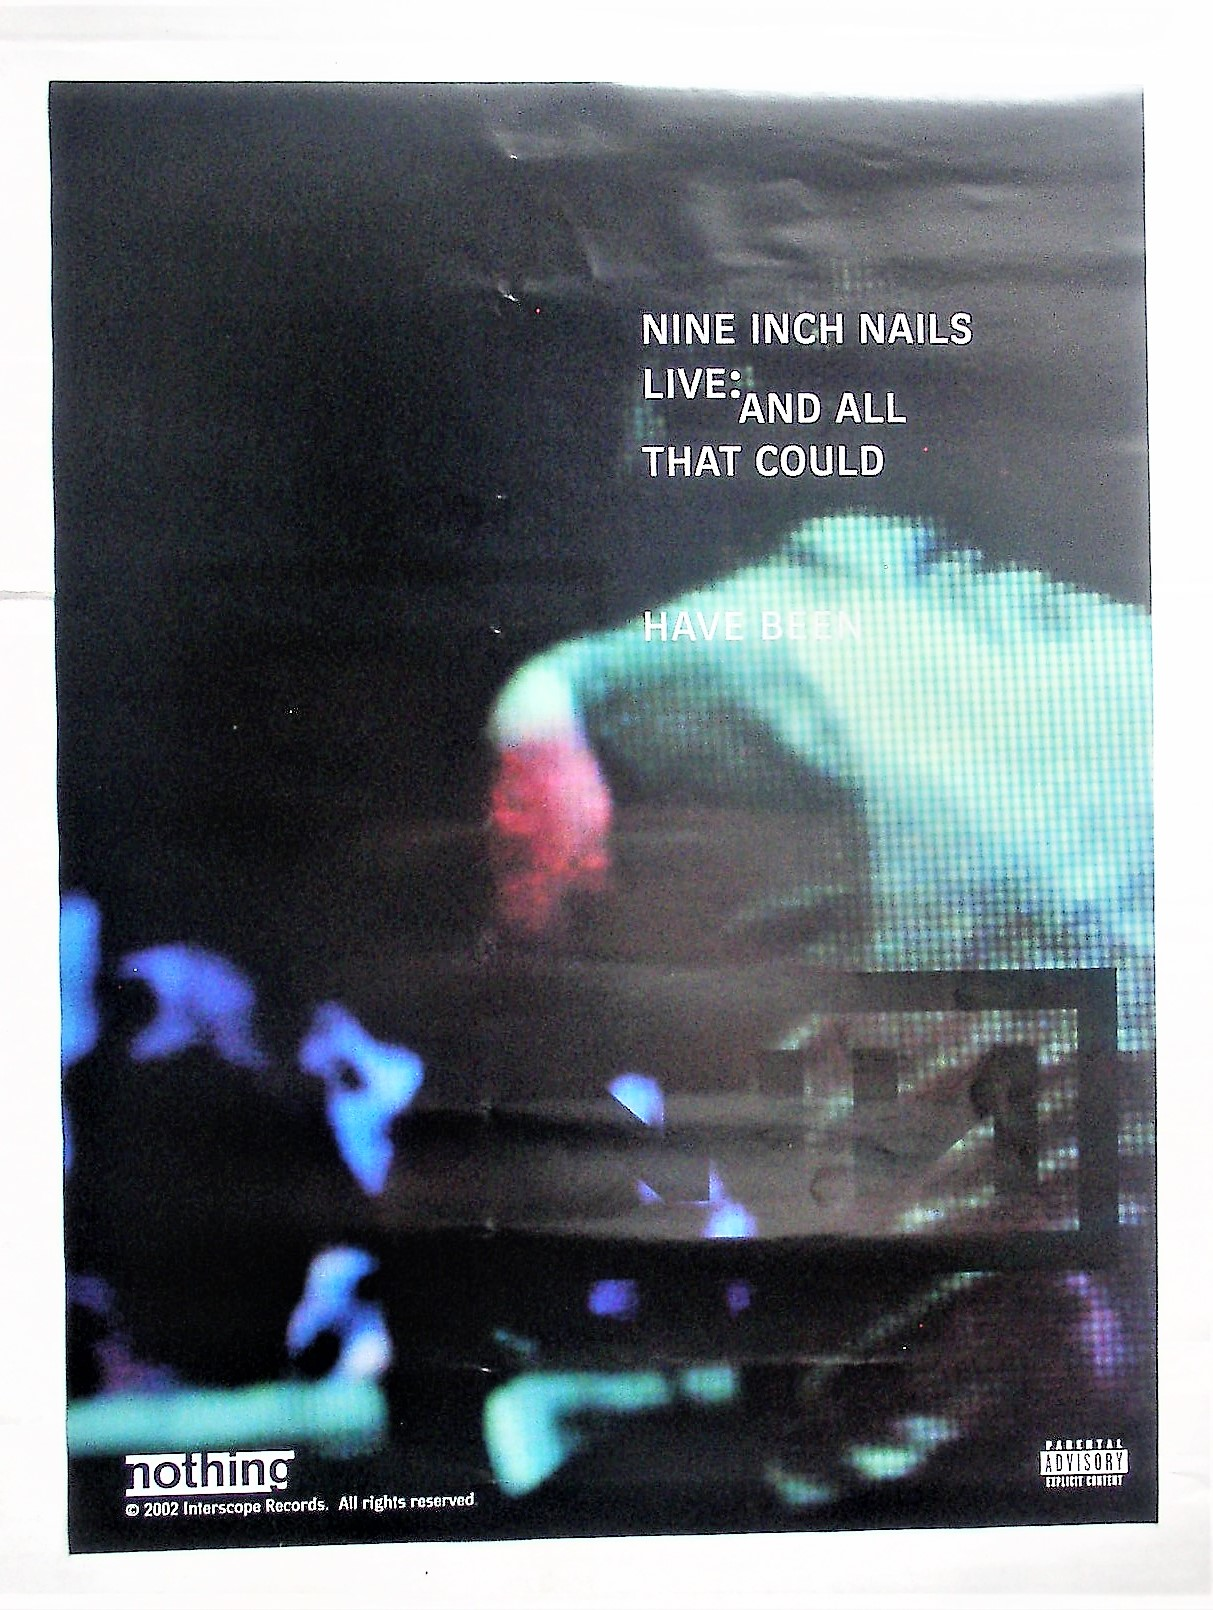 Nine Inch Nails / Live All That Could Have Been – Thingery Previews ...